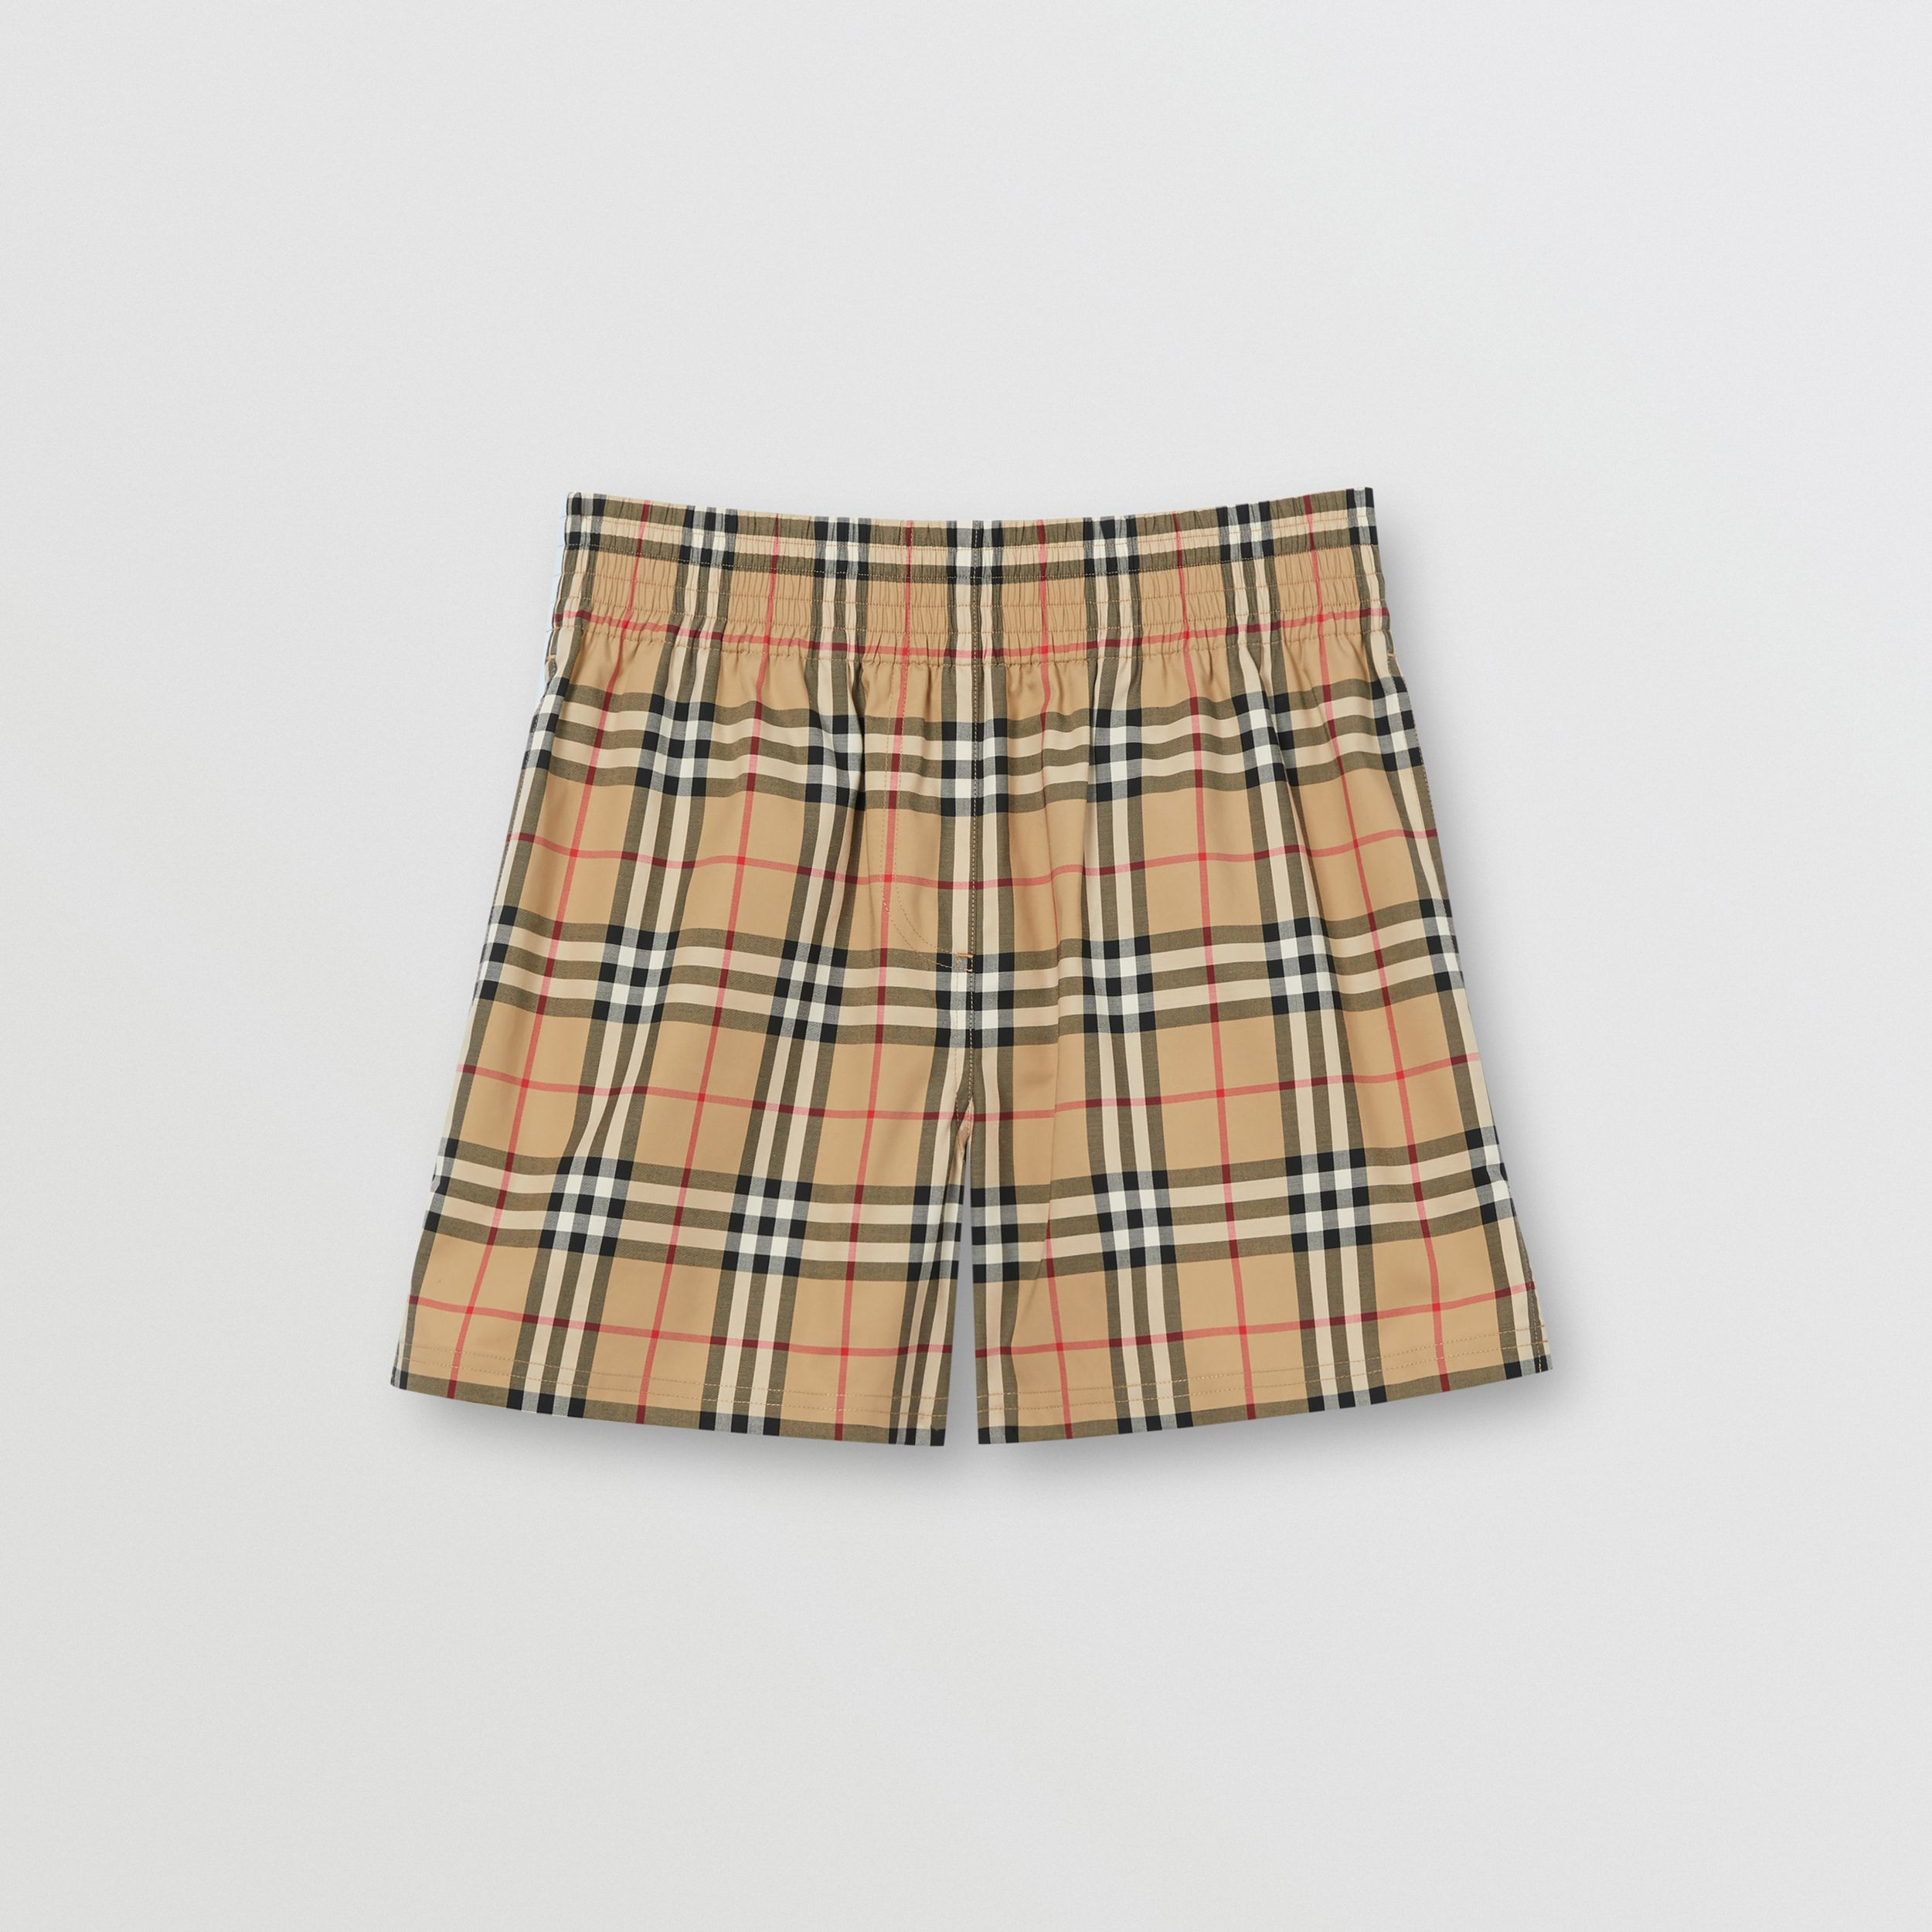 Shorts aus Stretchbaumwolle im Vintage Check-Design (Vintage-beige) - Damen | Burberry - 4